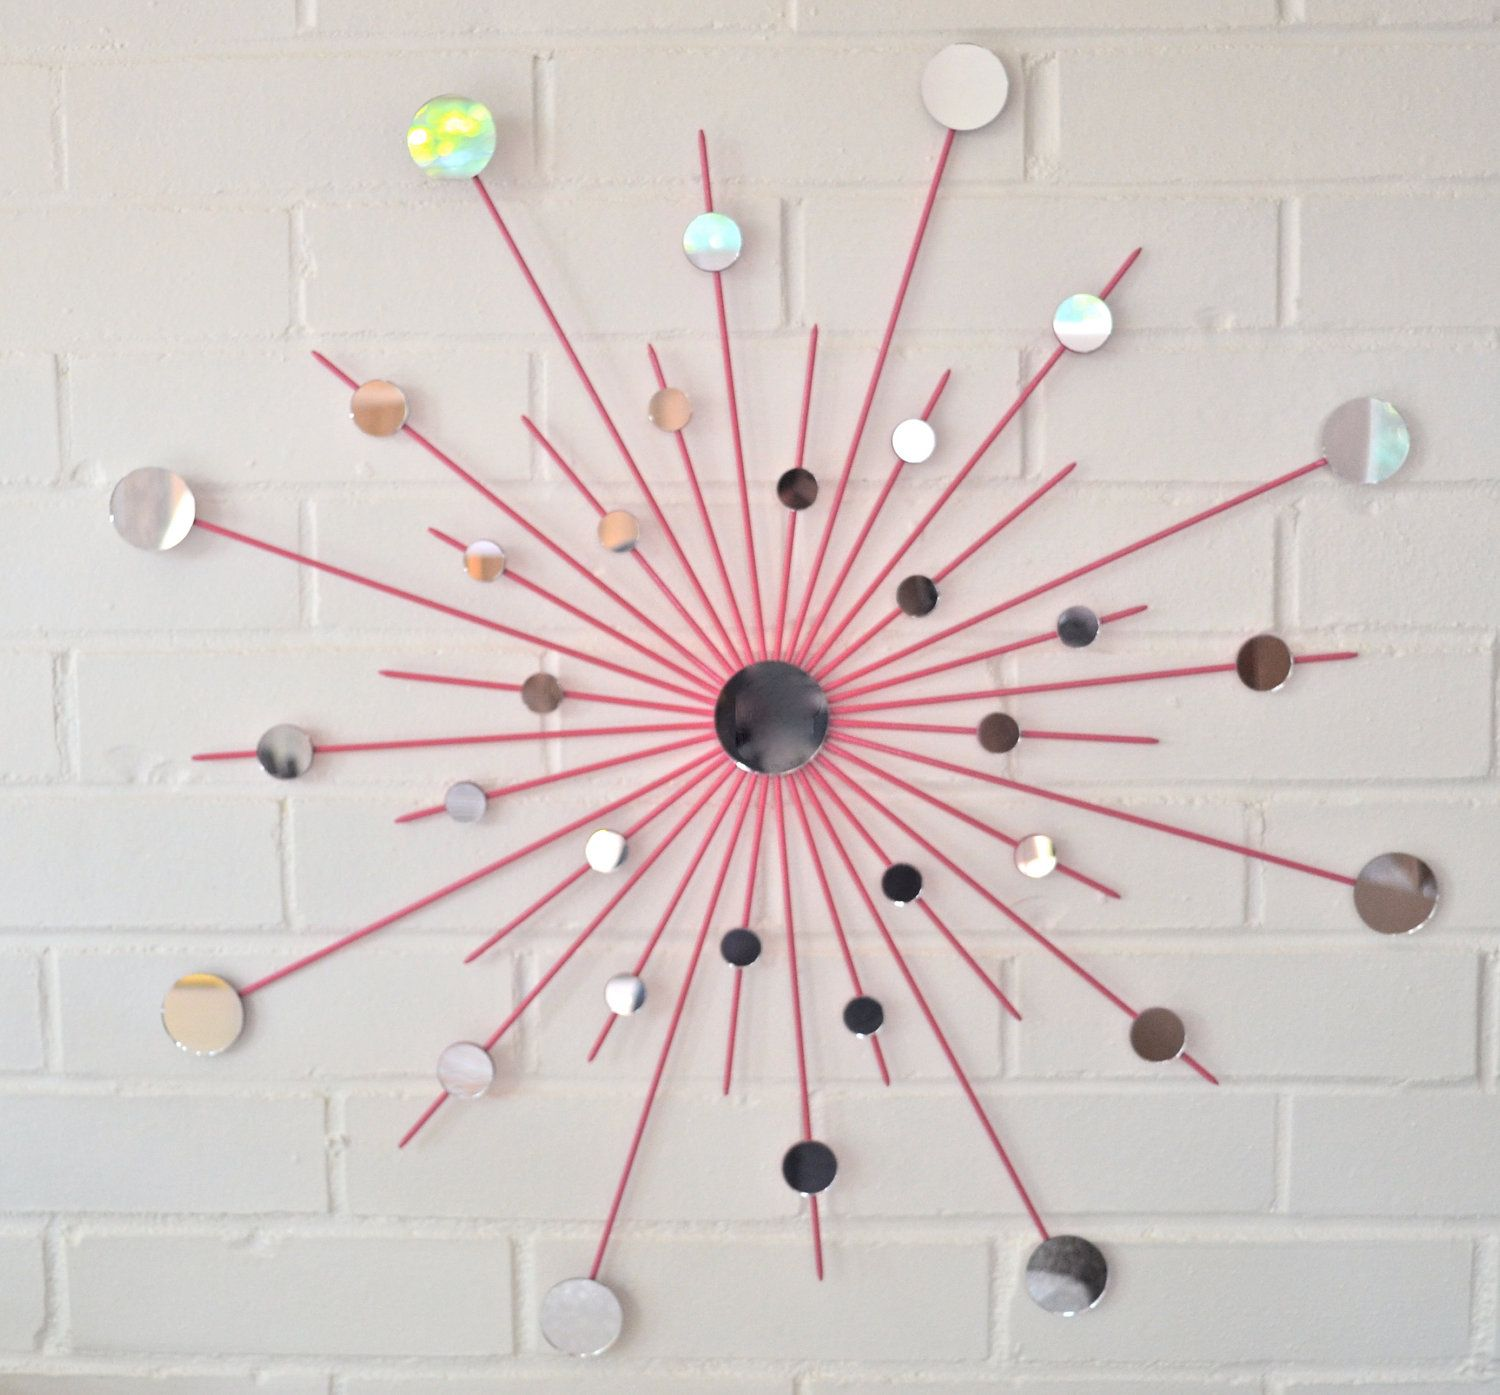 Charmant Starburst Metal Mirror Wall Art In Hot Pink Retro Girls Decor Dorm Room Via  Etsy.